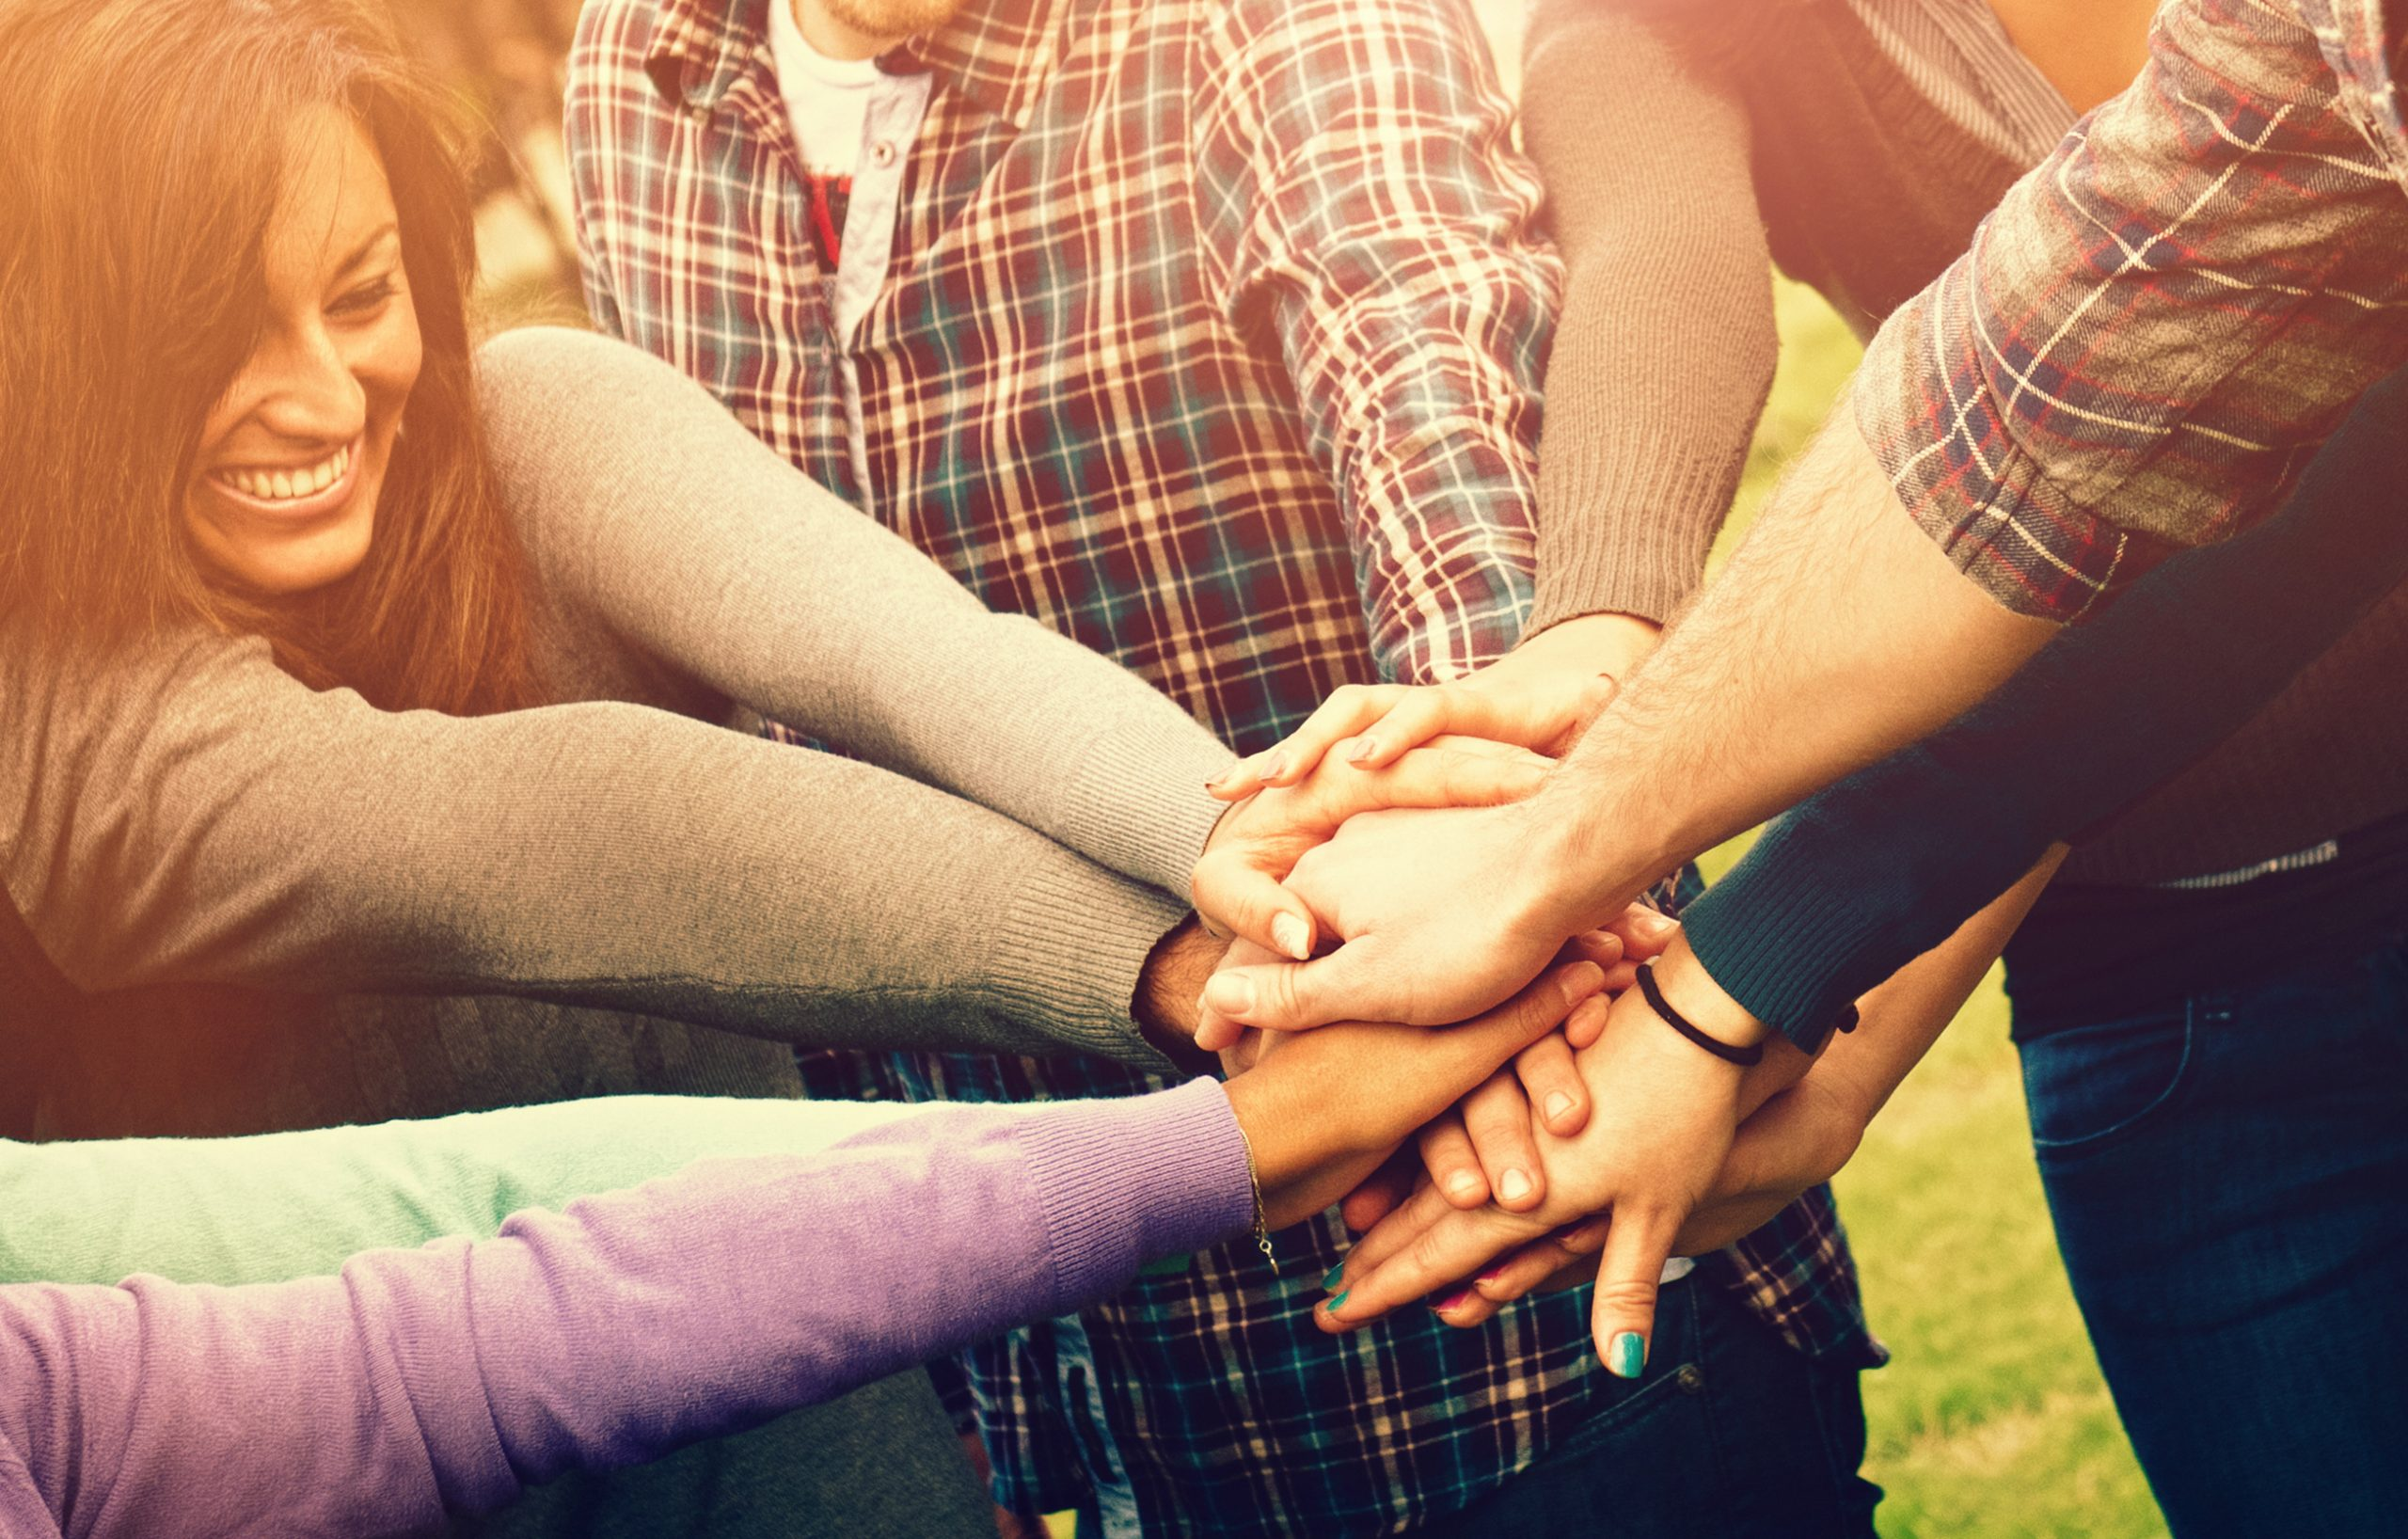 How Your Church Can Partner With Others to Impact Your Community